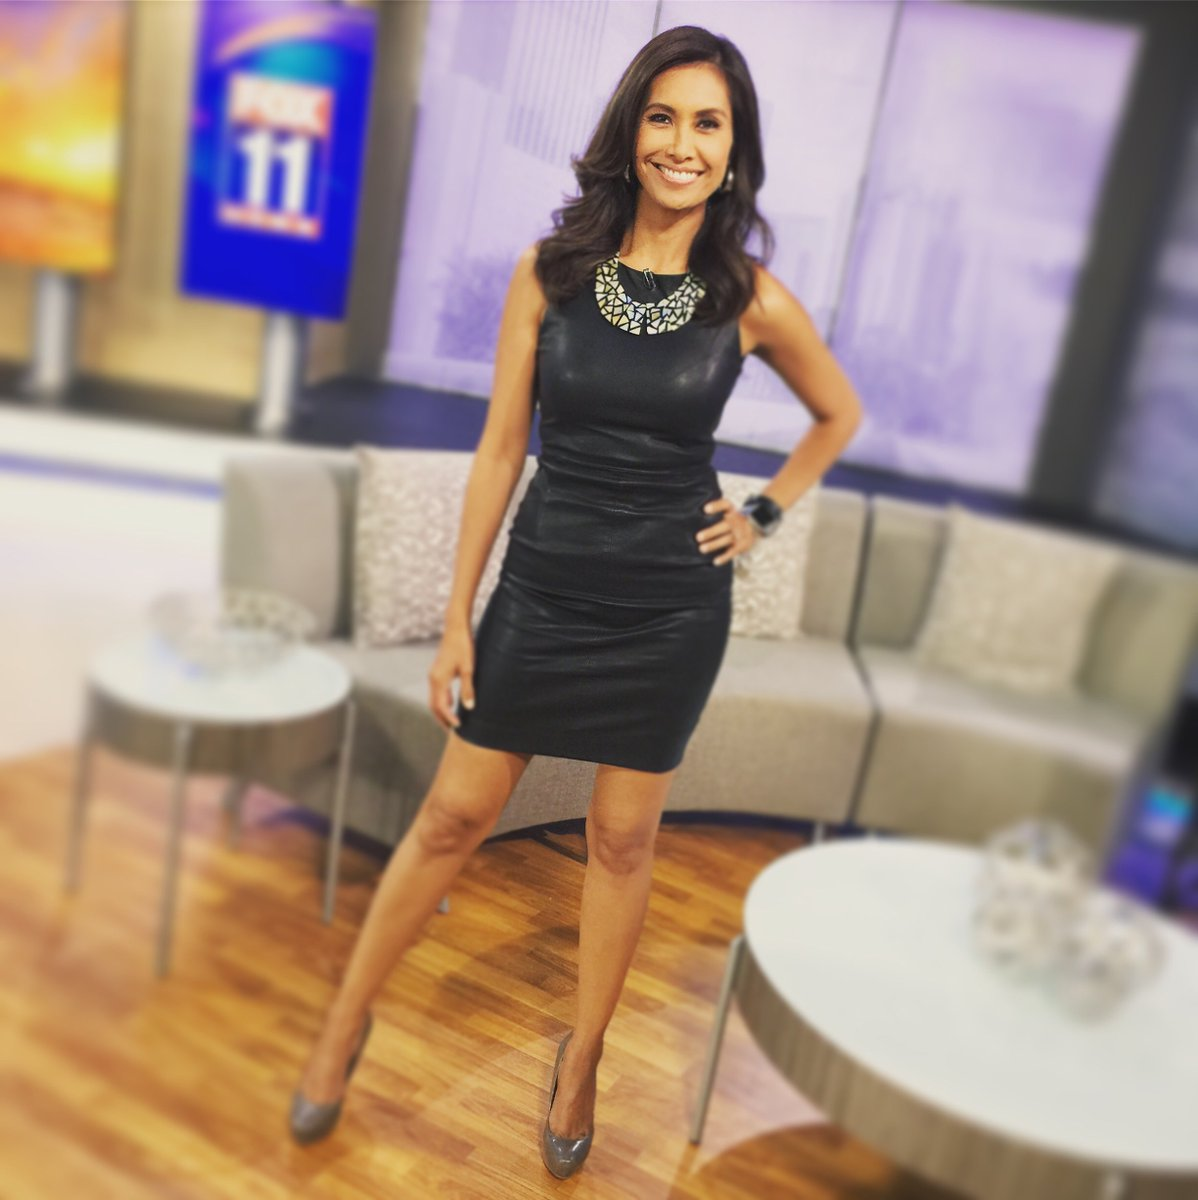 """Hawaii News Now >> Maria Quiban on Twitter: """"My Friday #ootd ! Sorry so late ..."""